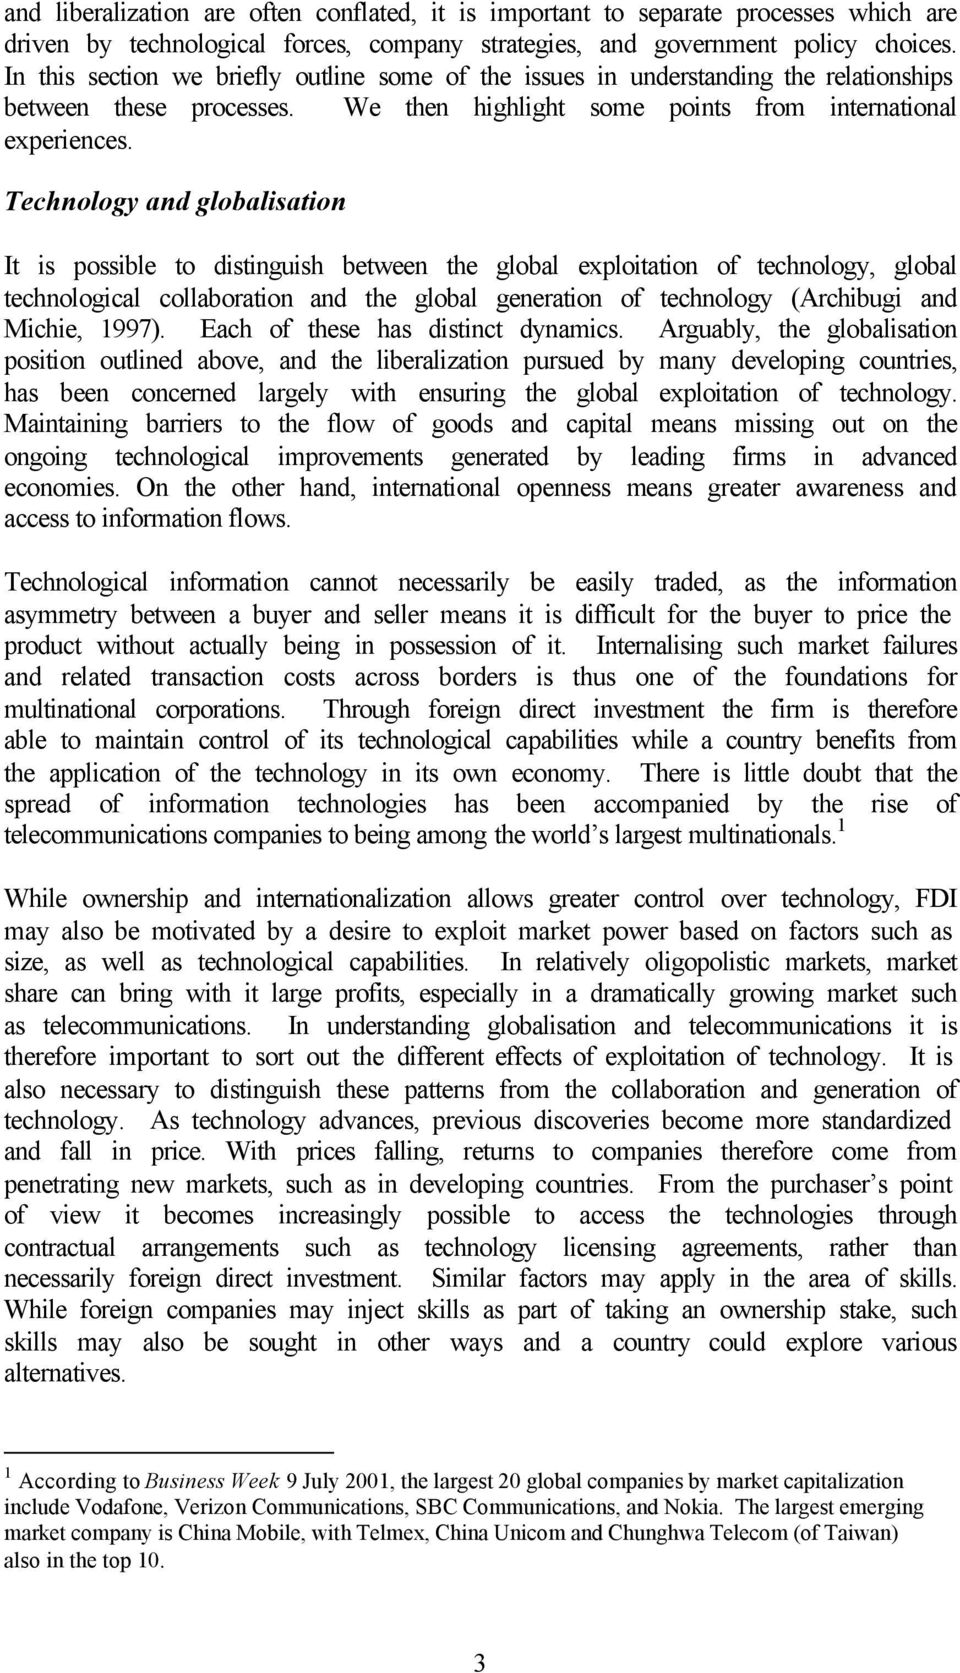 Technology and globalisation It is possible to distinguish between the global exploitation of technology, global technological collaboration and the global generation of technology (Archibugi and